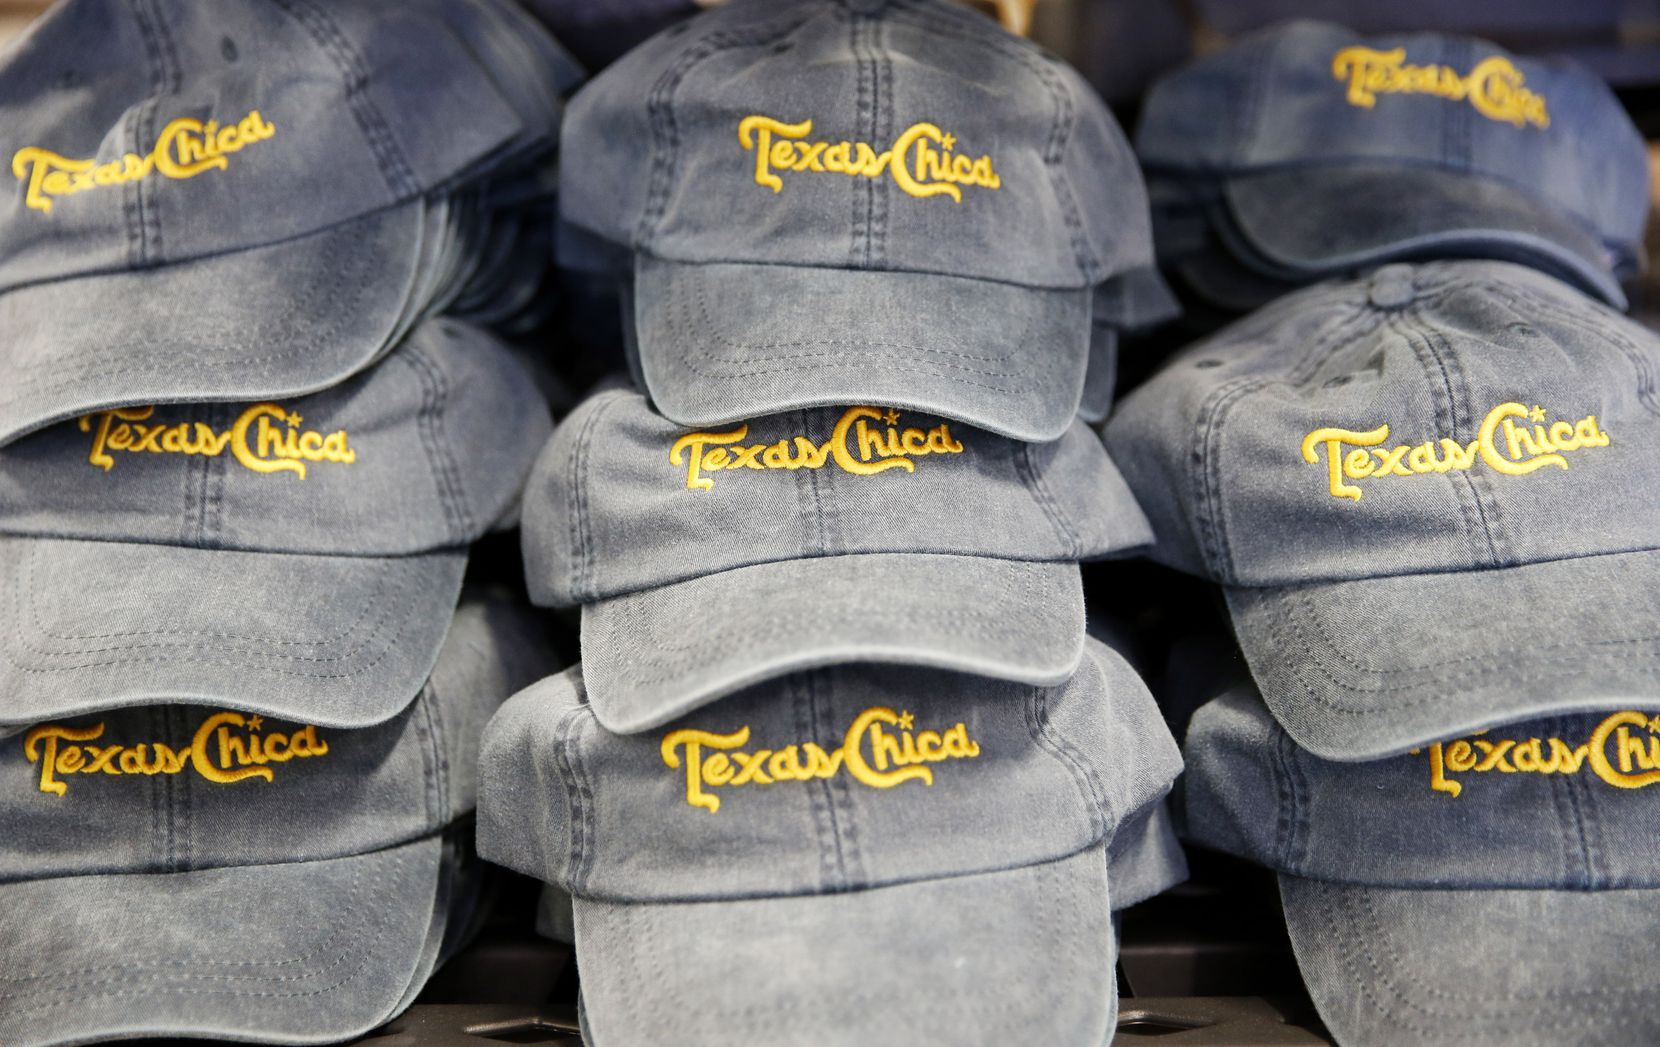 Tumbleweed TexStyles' Texas Chica collection is among its most popular sellers.